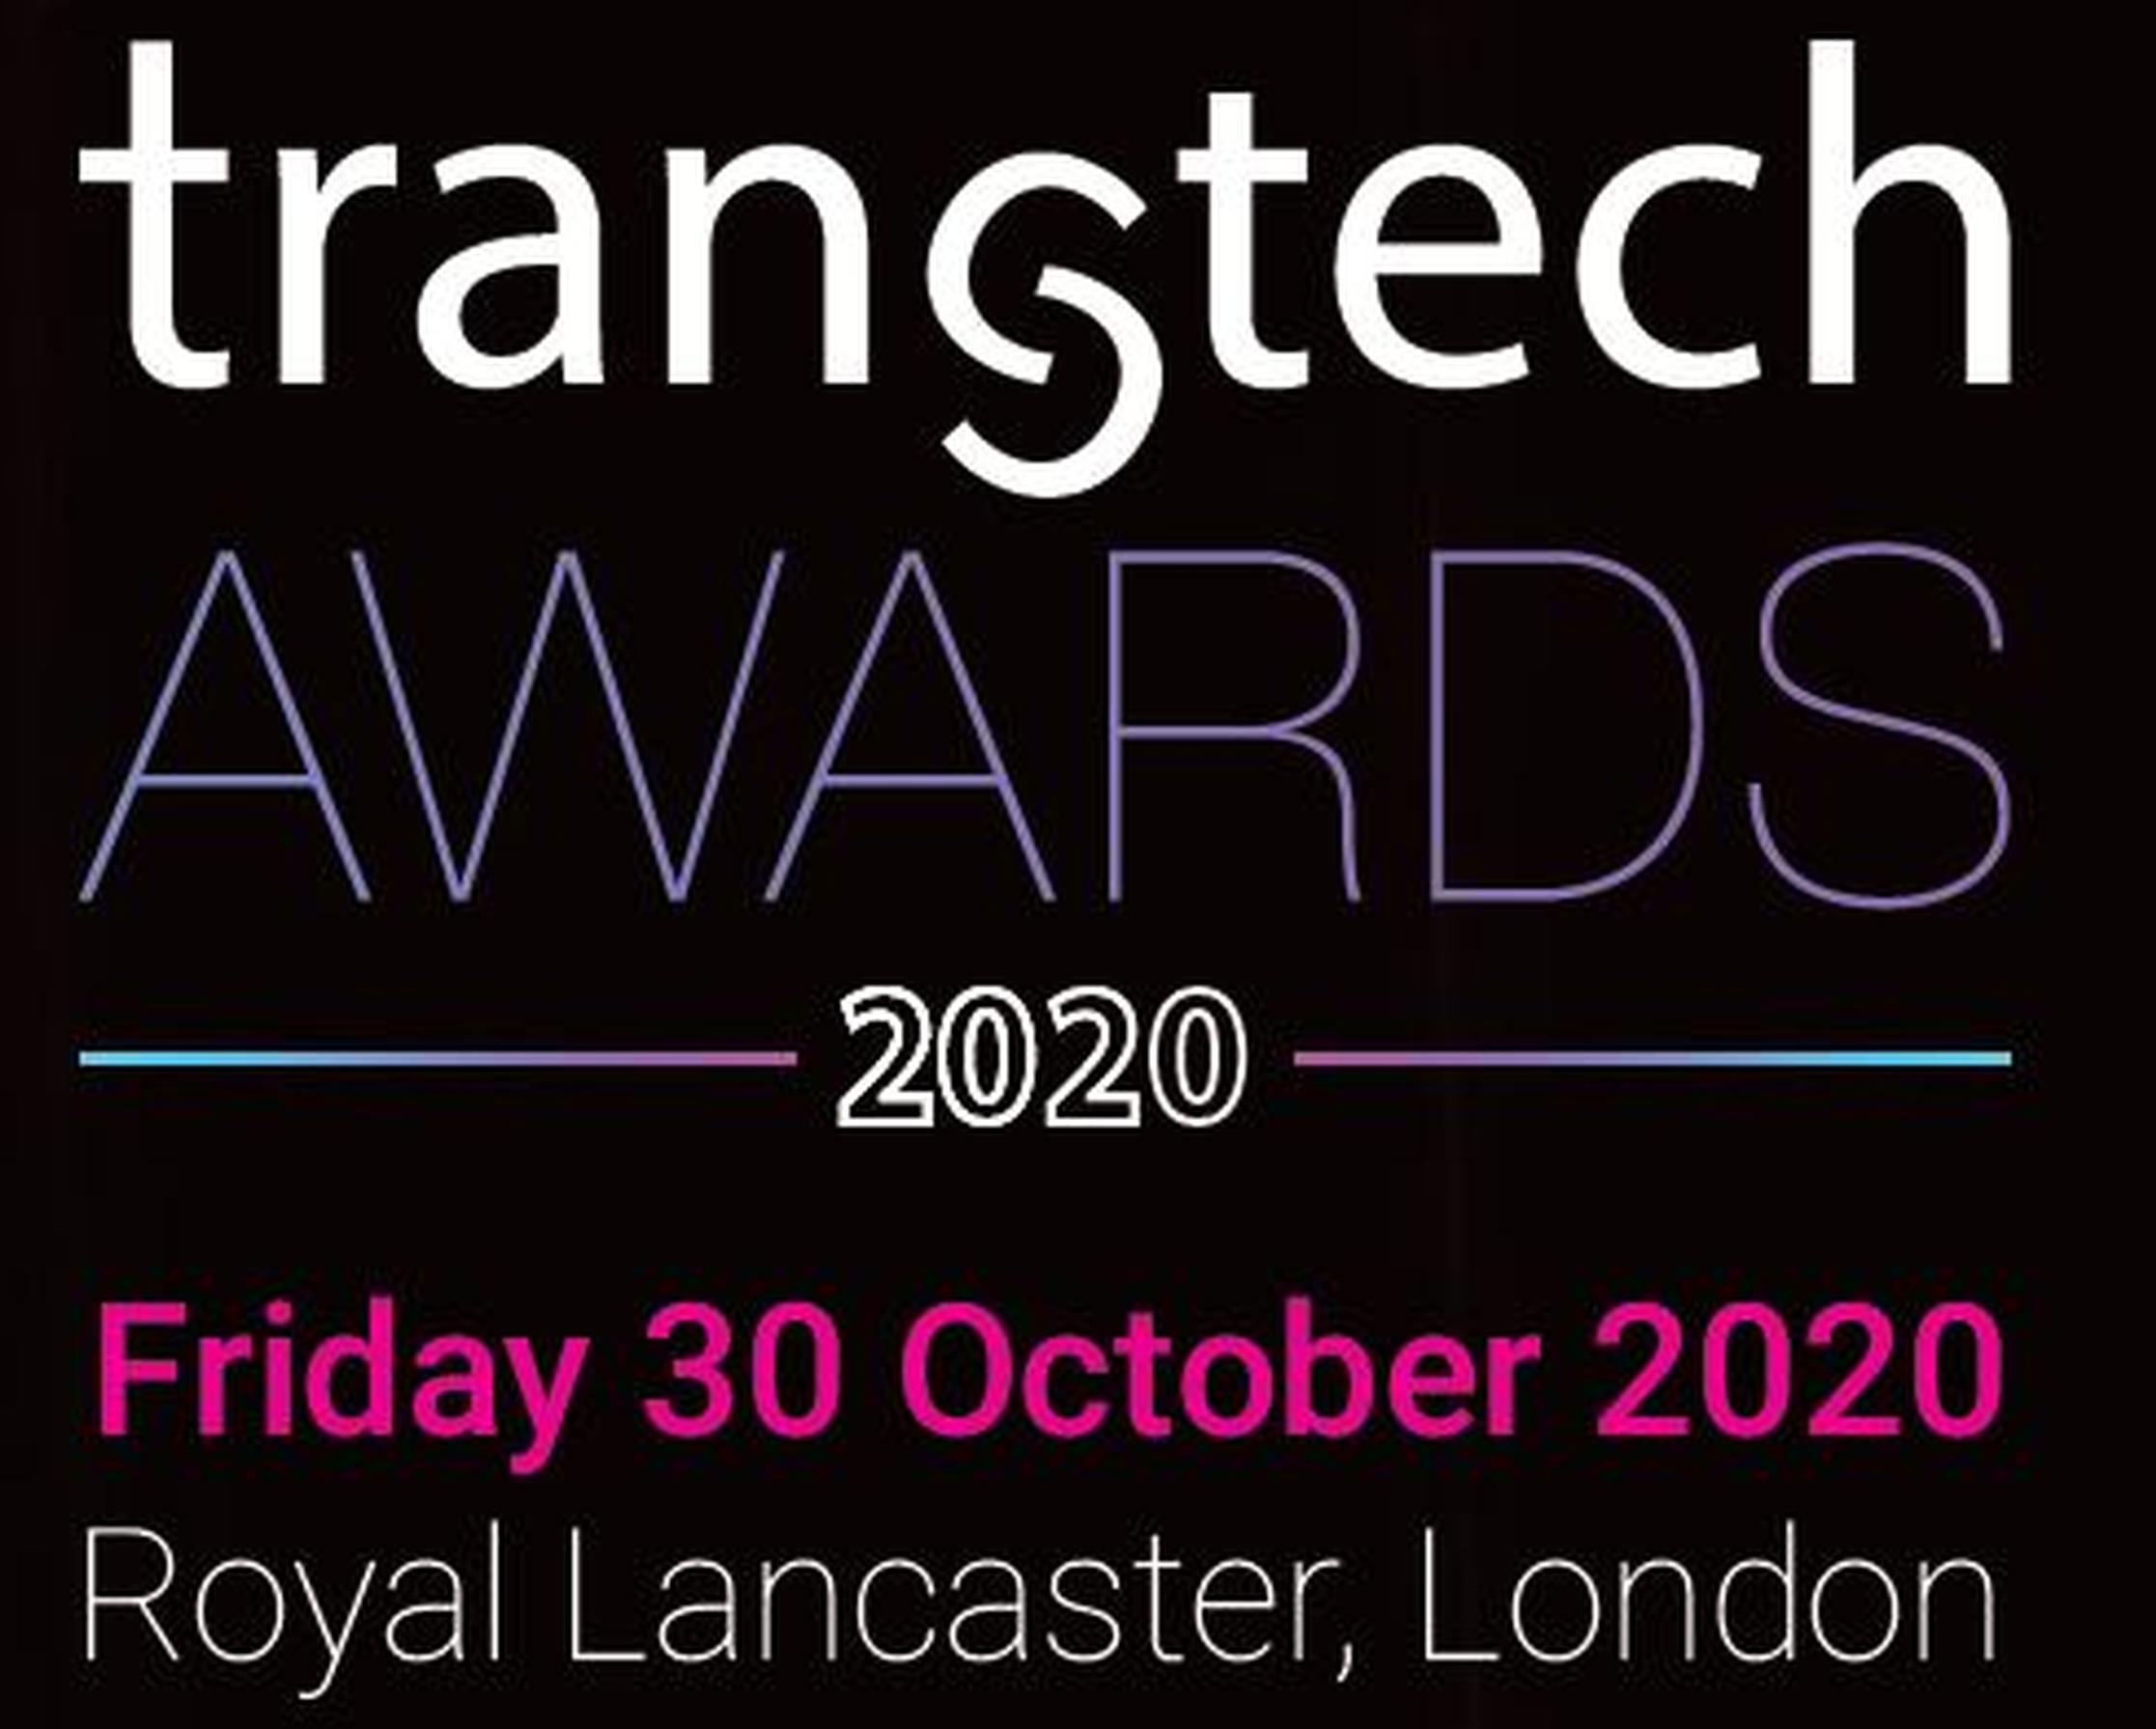 TRANStech Awards 2020 return to the Royal Lancaster Hotel